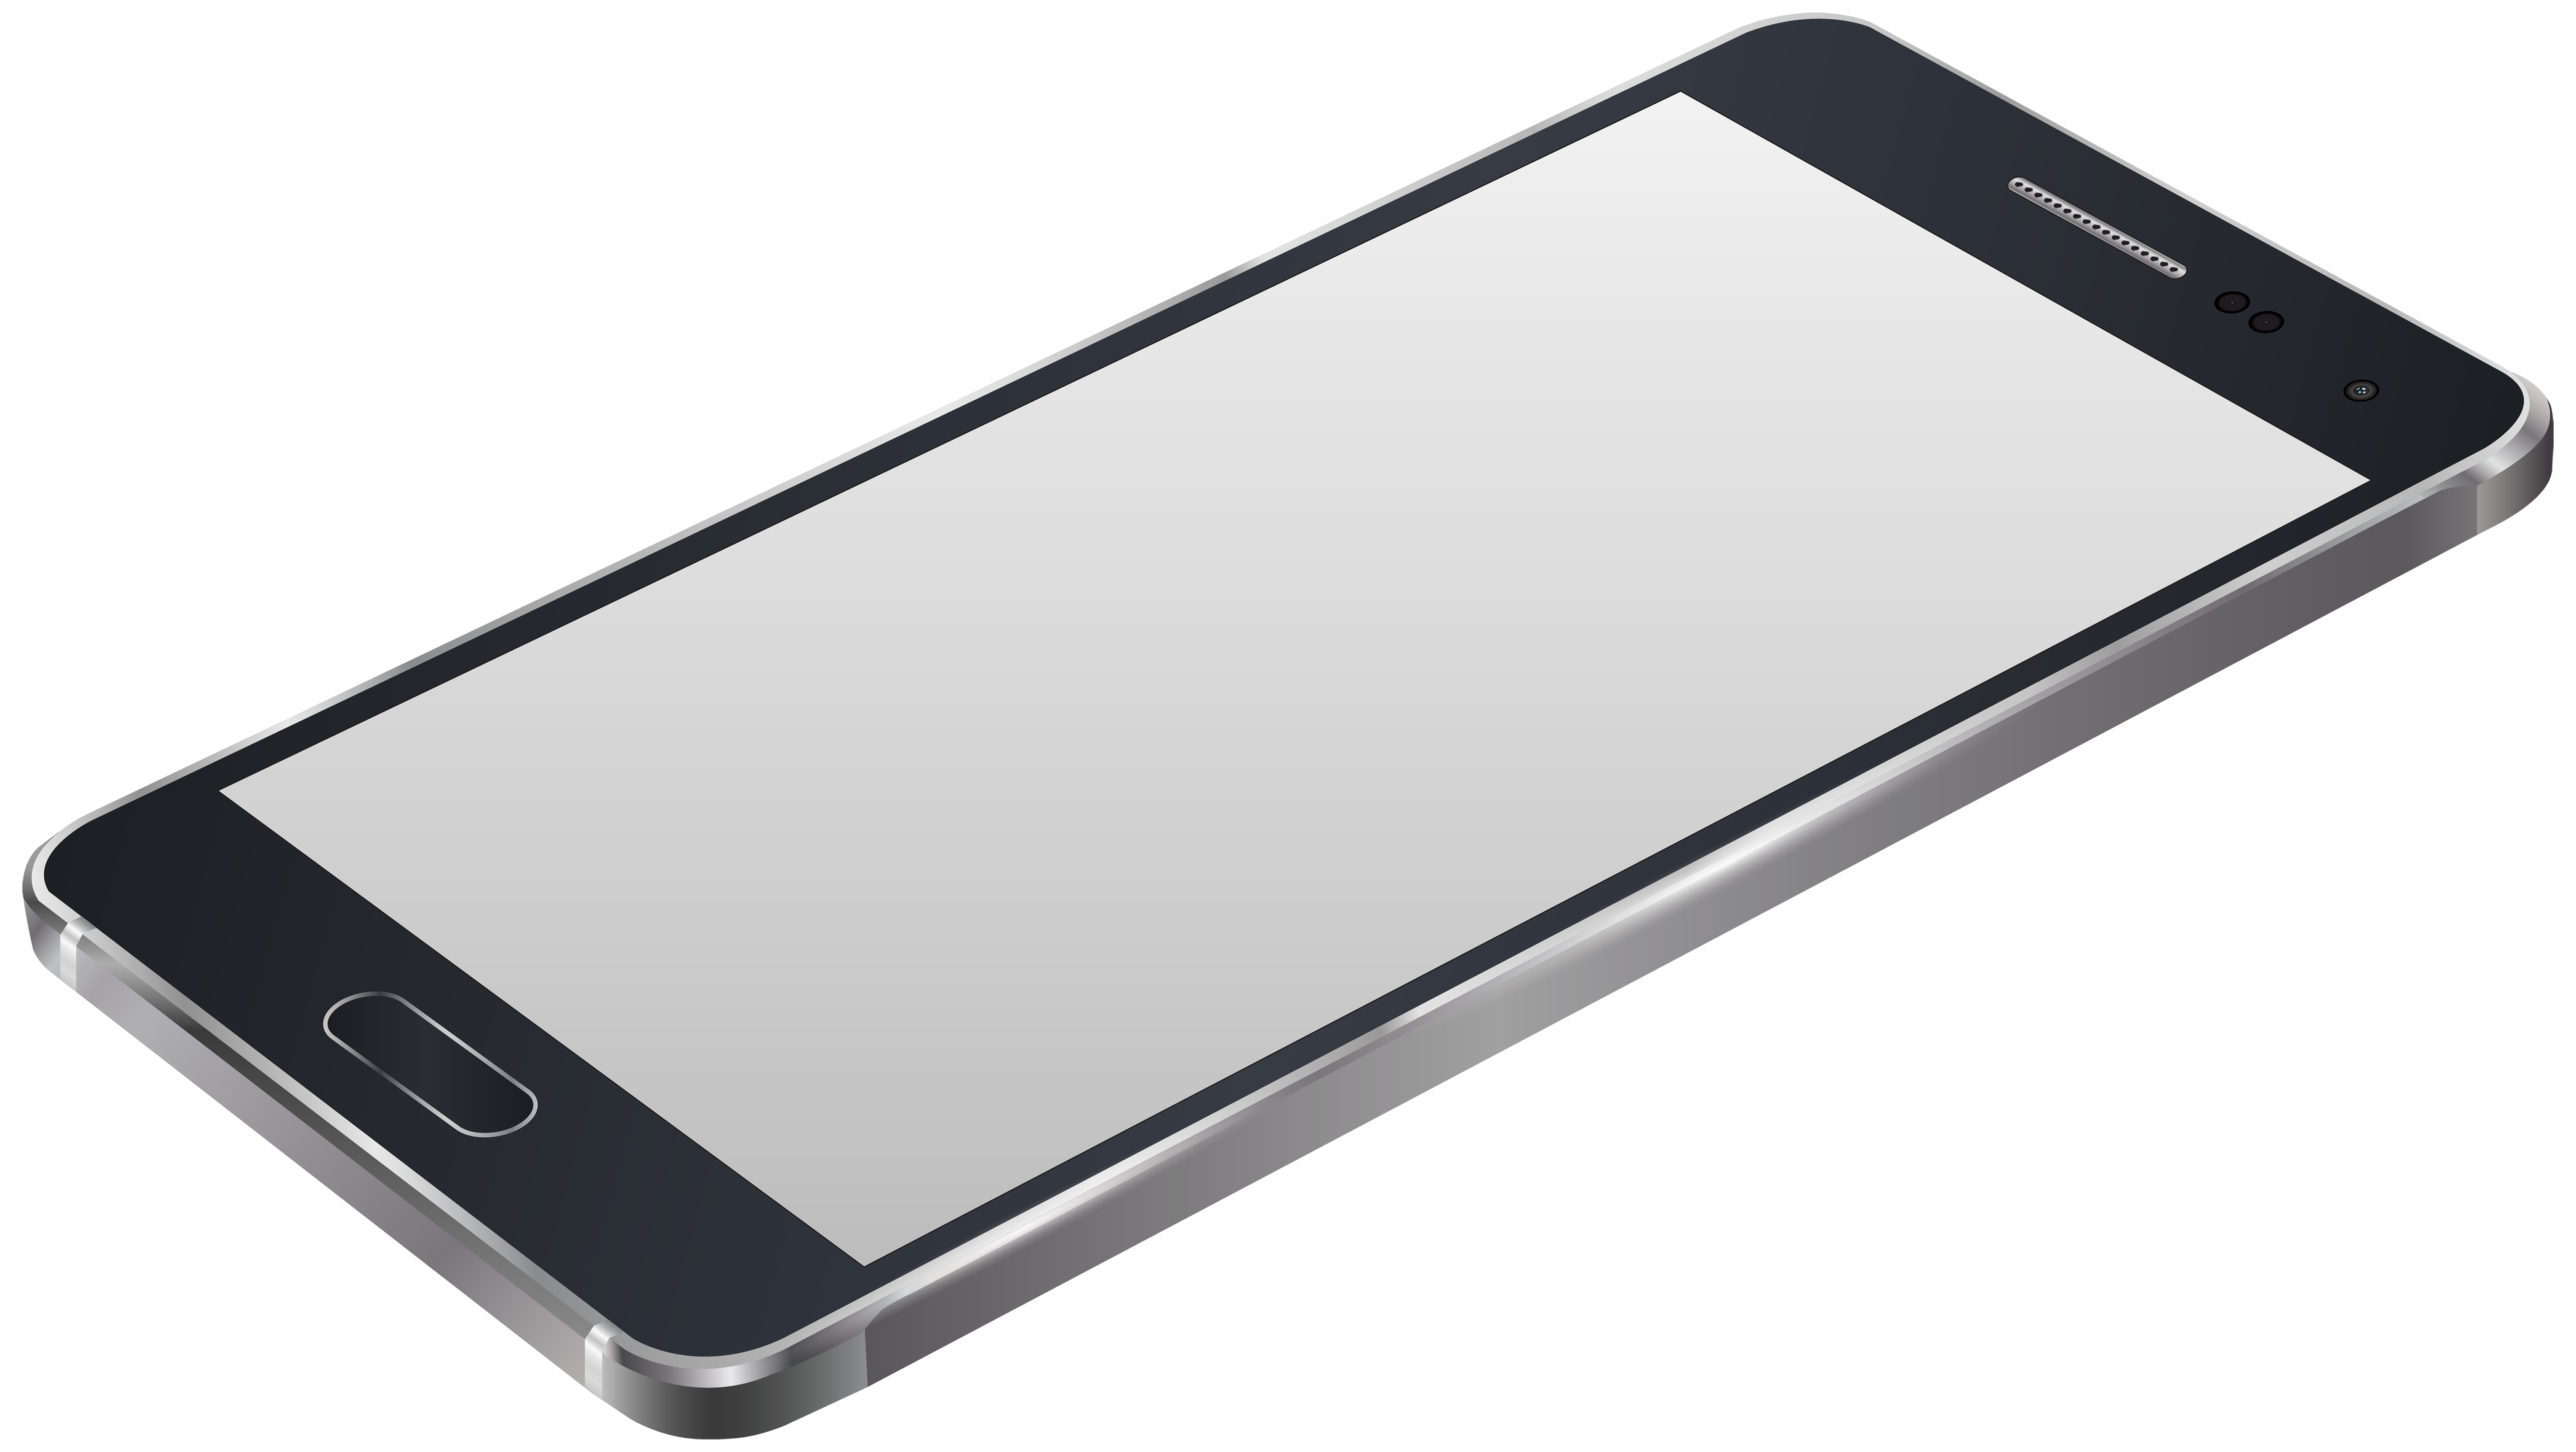 Smartphone clipart png. Grey clip art image